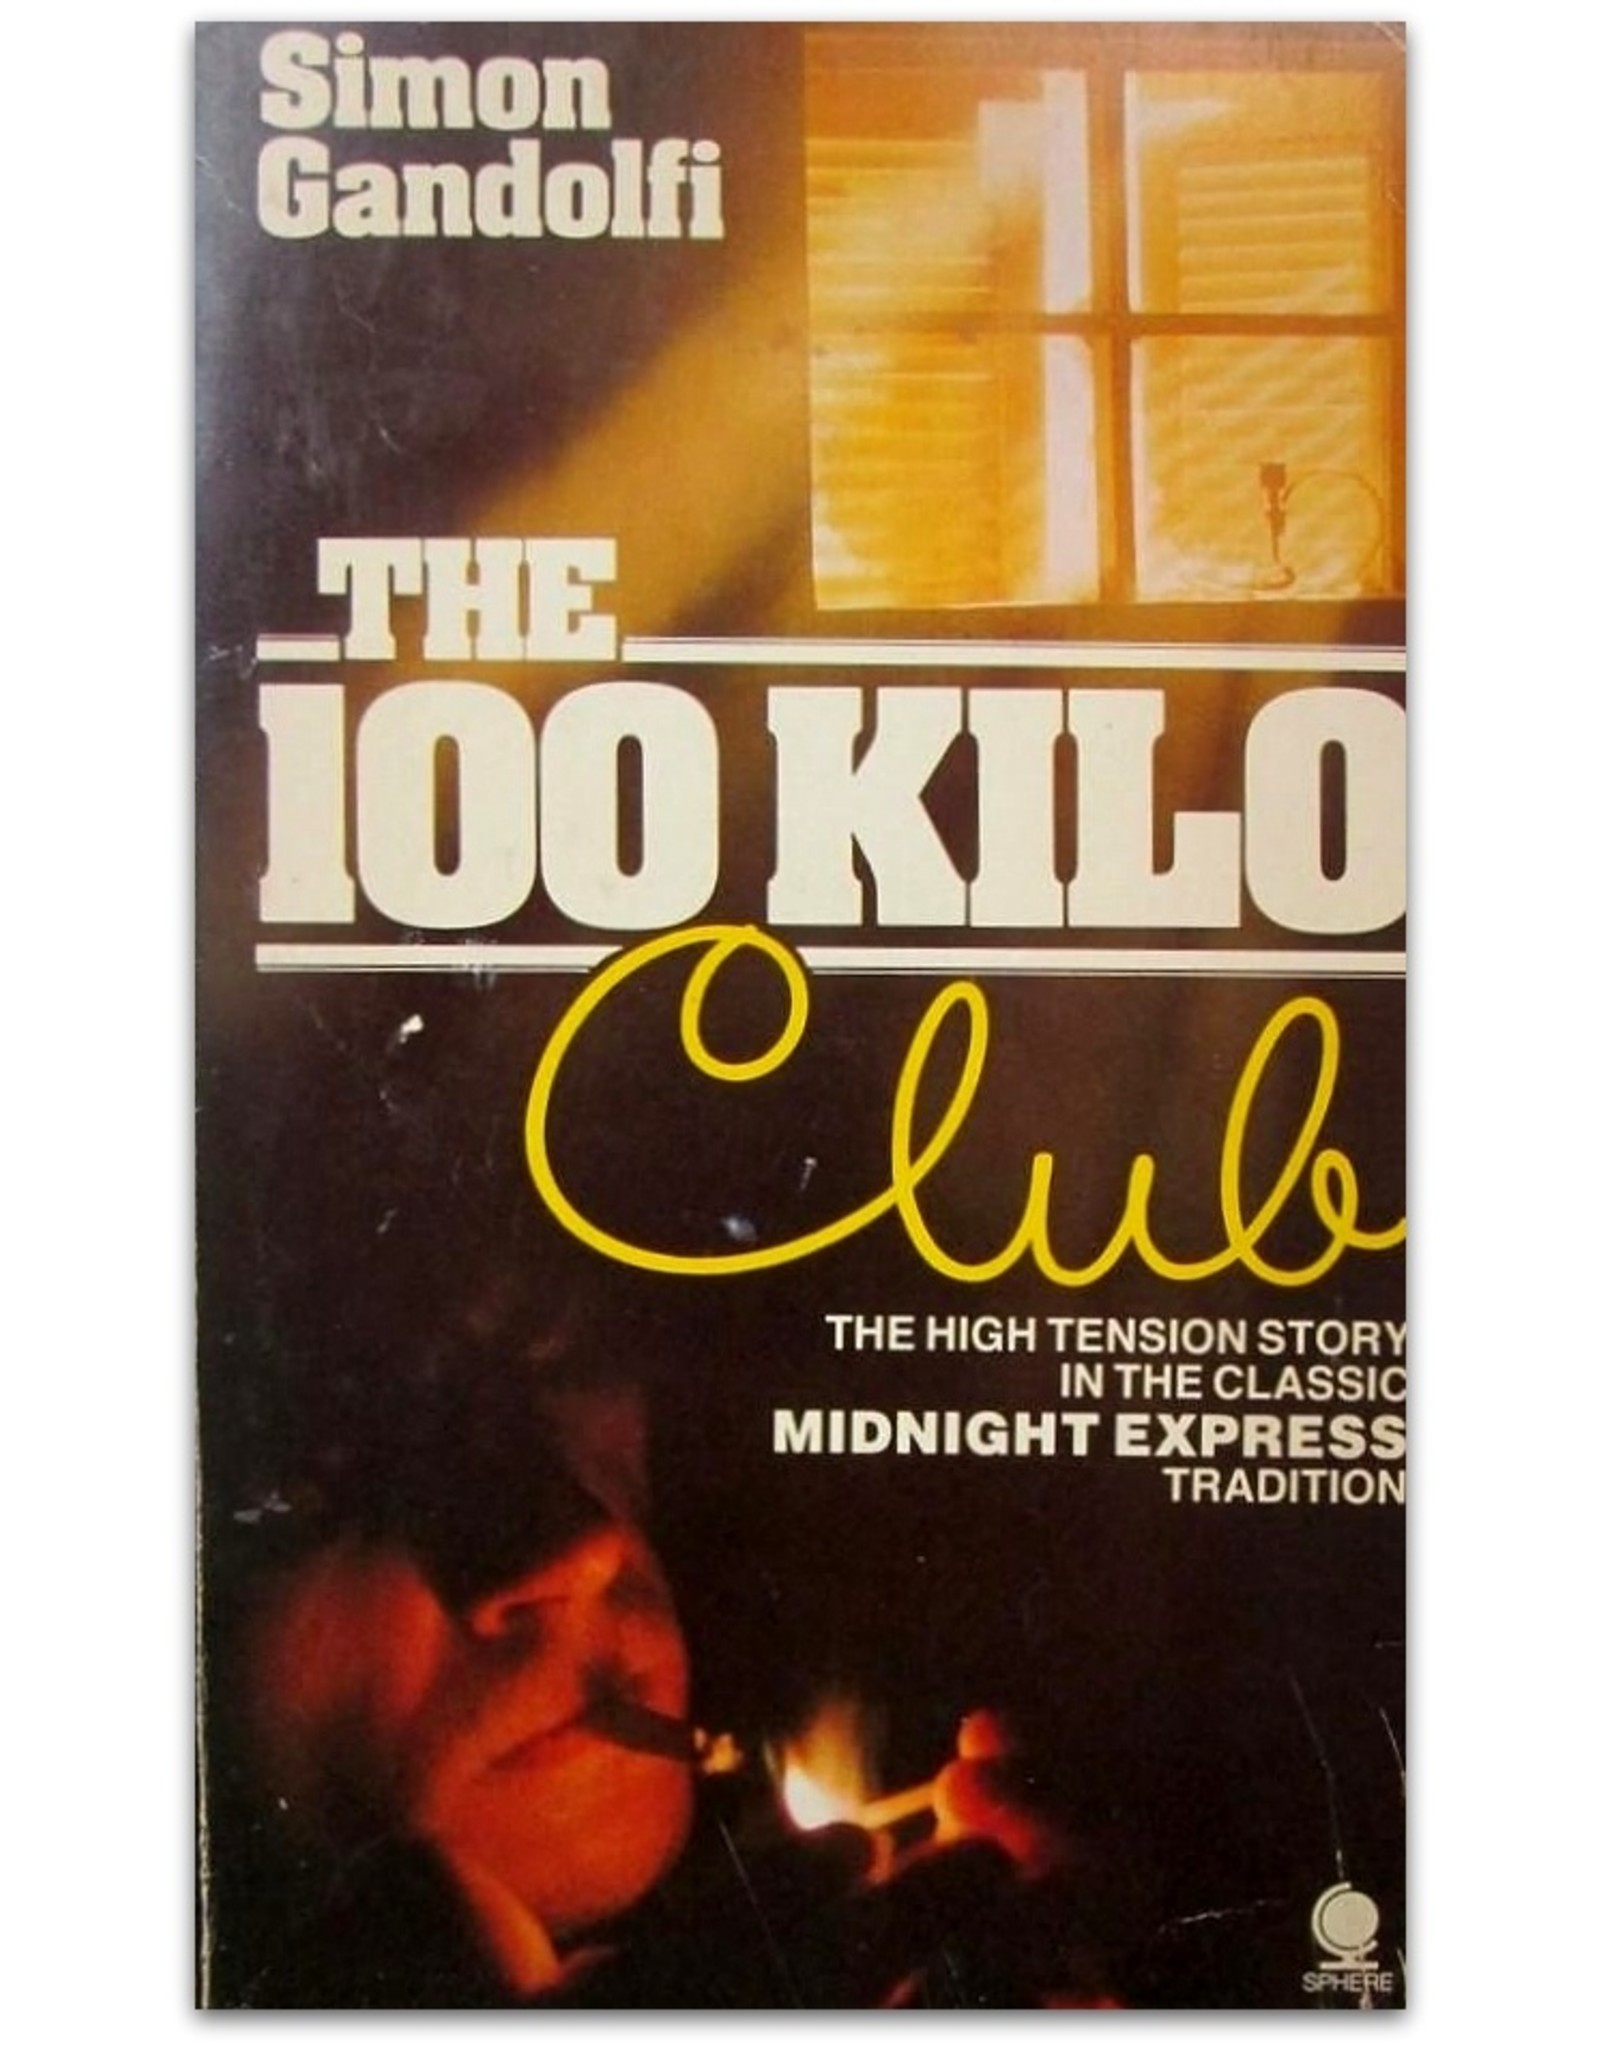 "Simon Gandolfi - The 100 Kilo Club. [""The high tension story in the classic Midnight Express tradition""]"